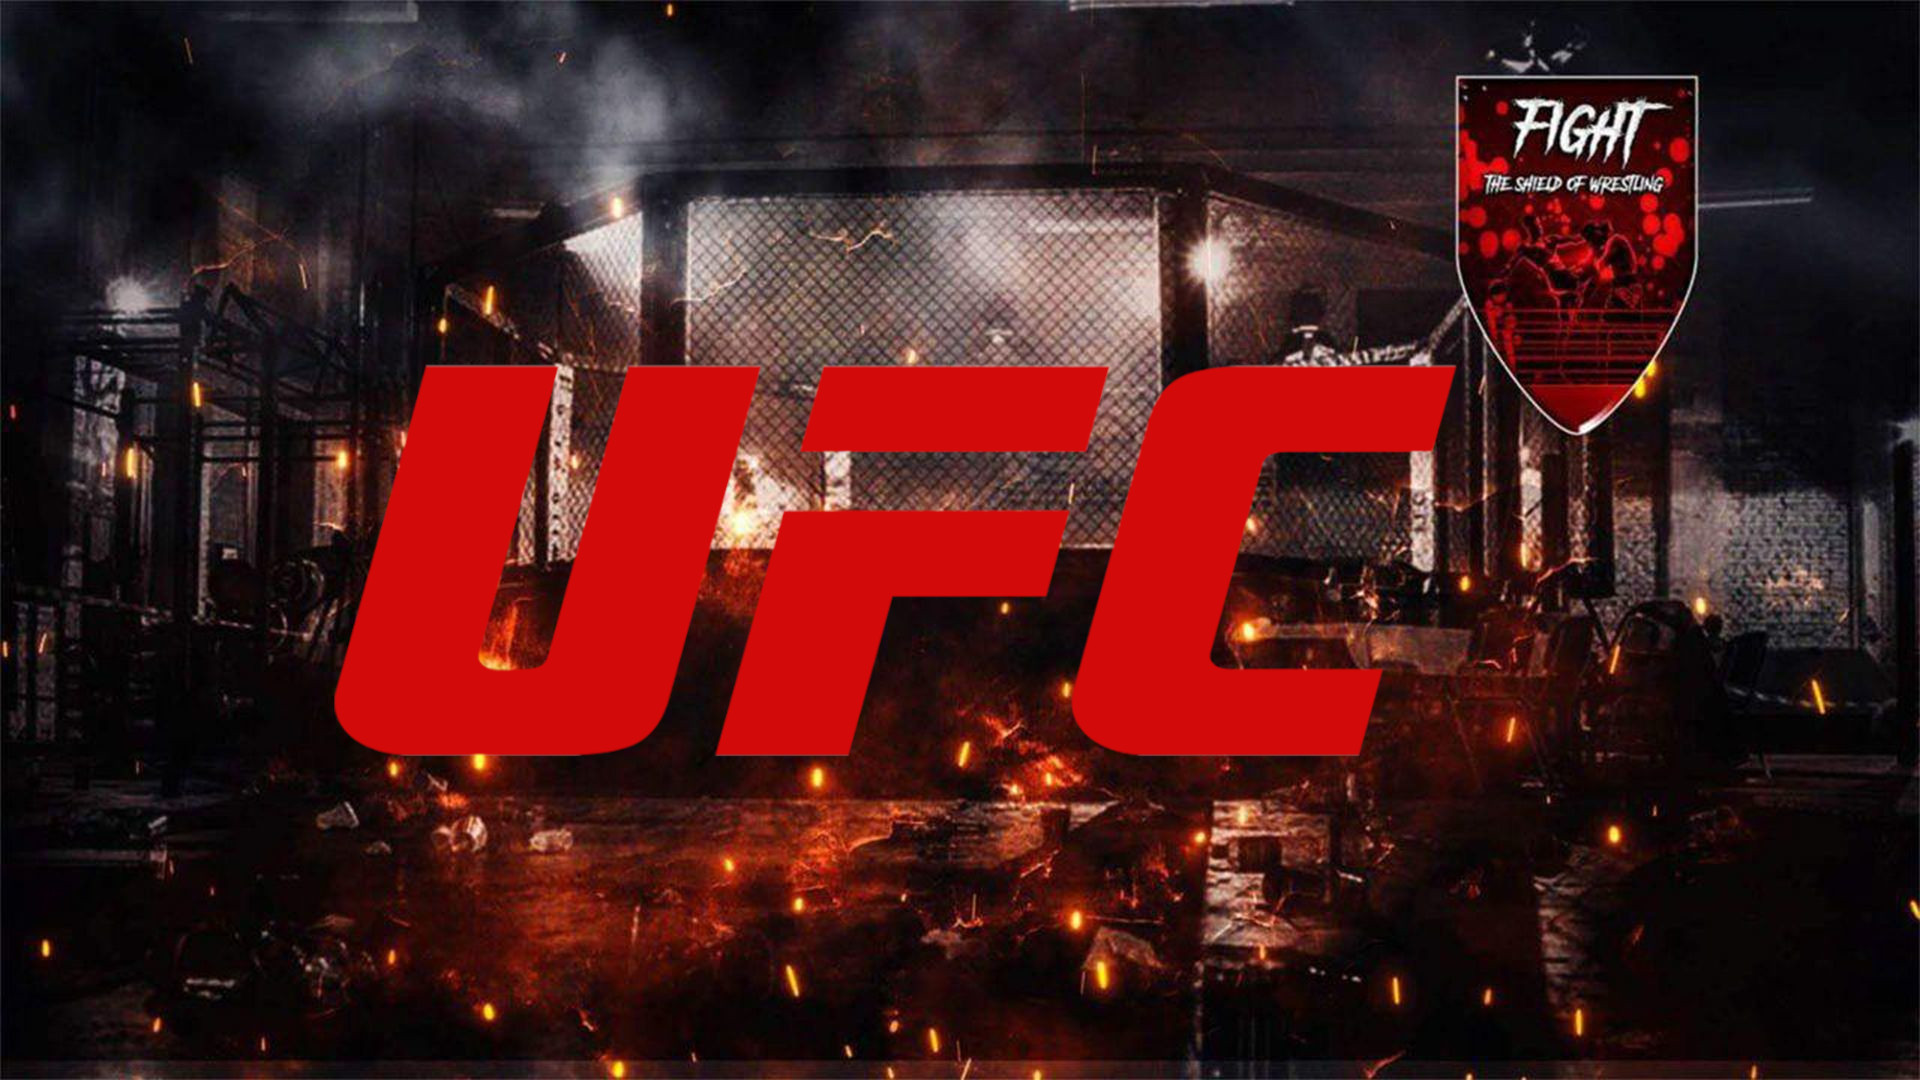 UFC: i 5 dream match tra boxer e fighter